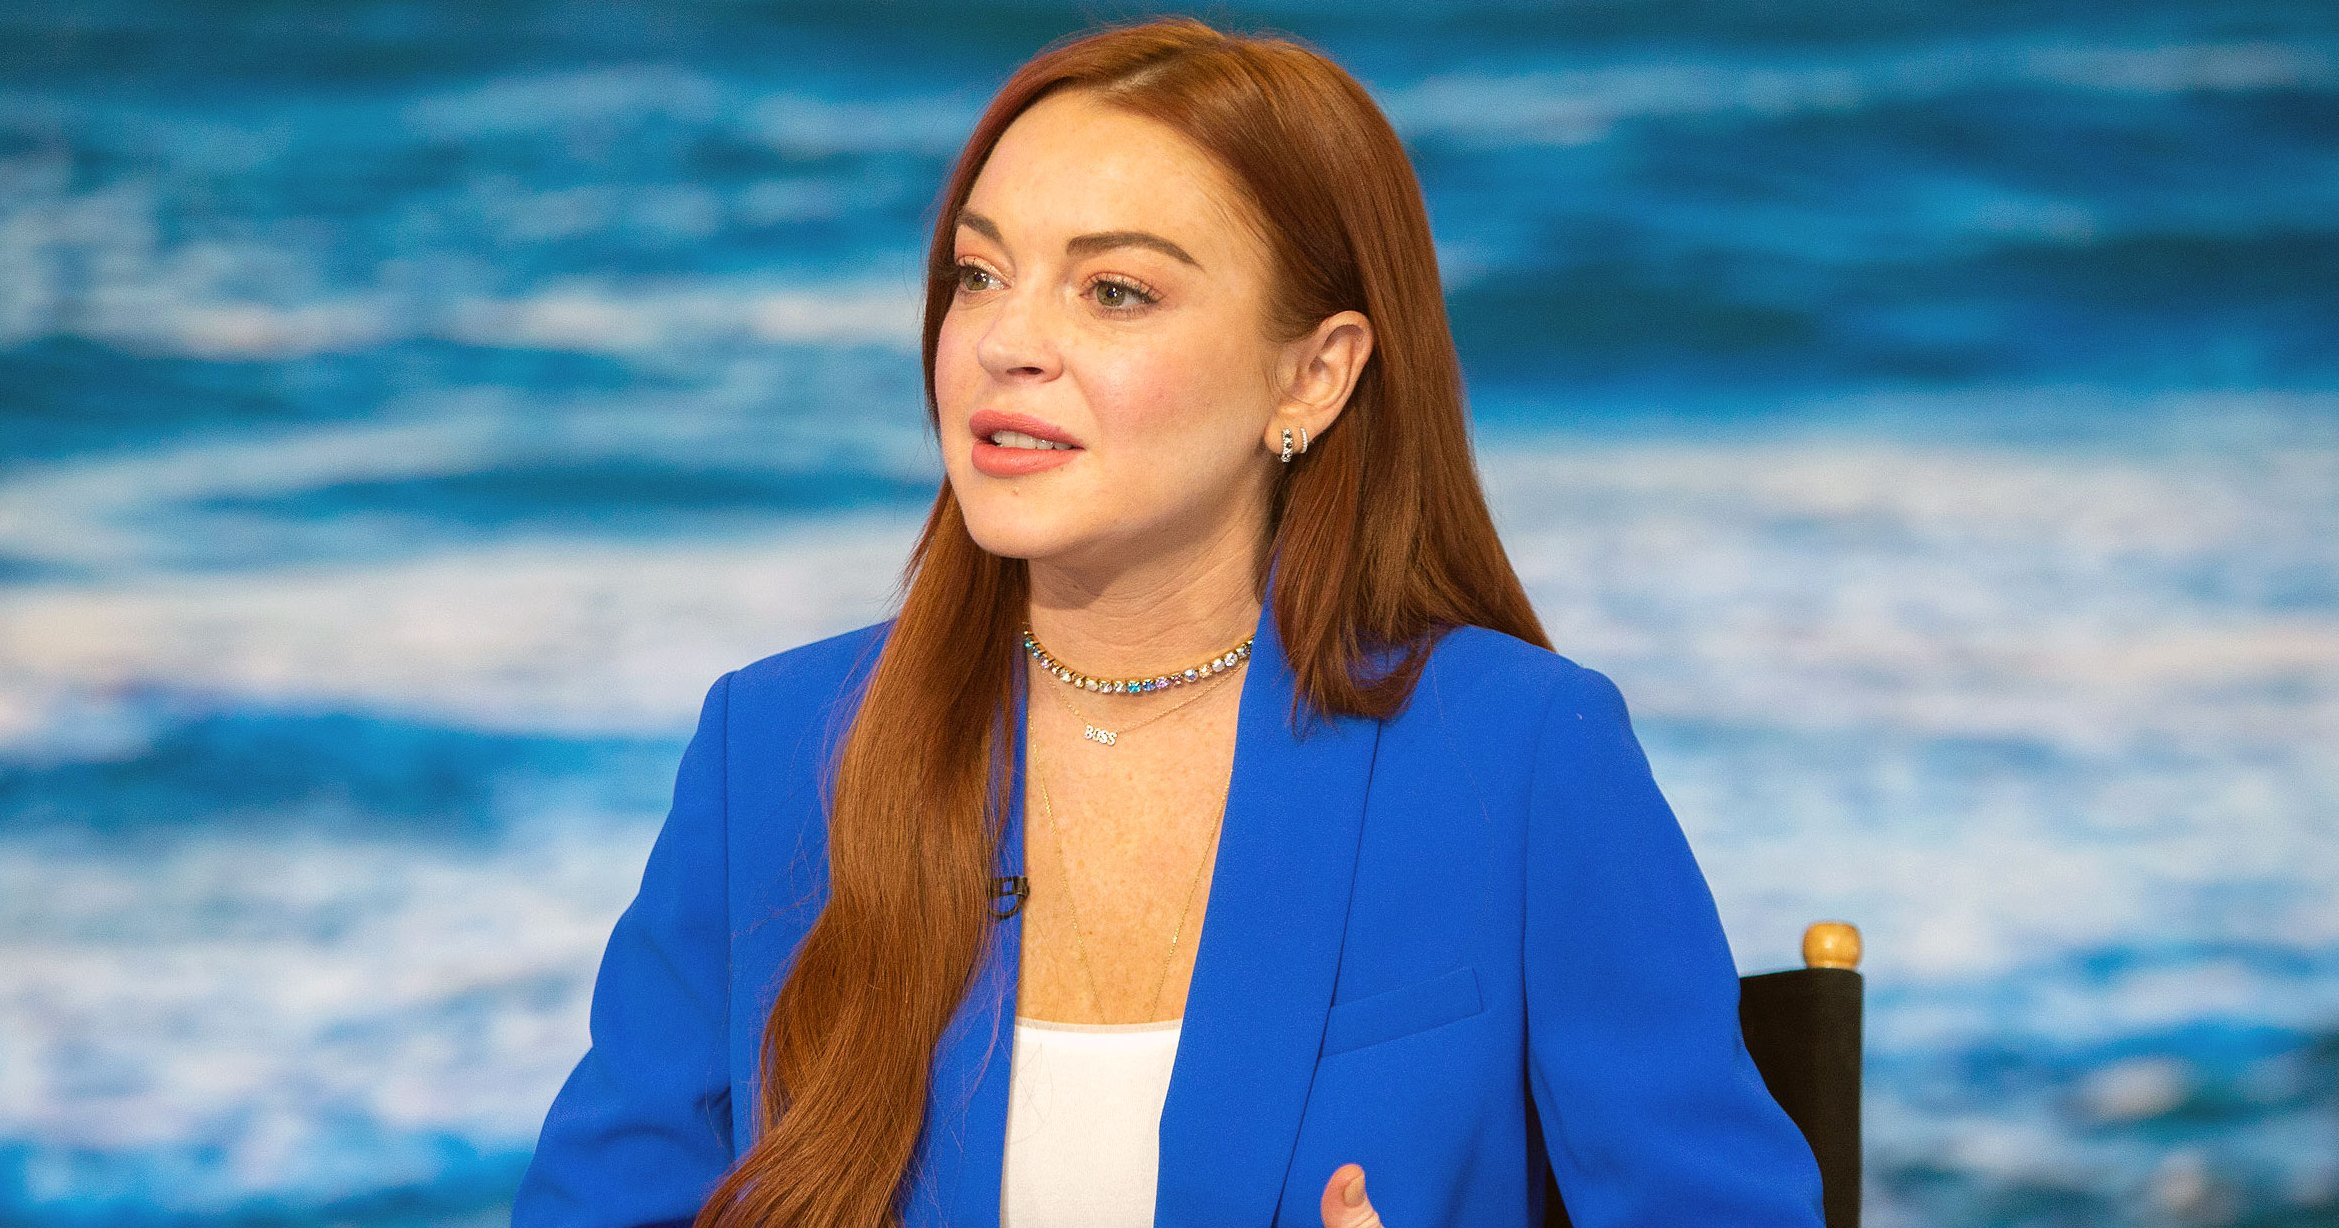 Lindsay Lohan Denies Threatening CBS After Mom Dina Lohan Was Voted Off 'Celebrity Big Brother'